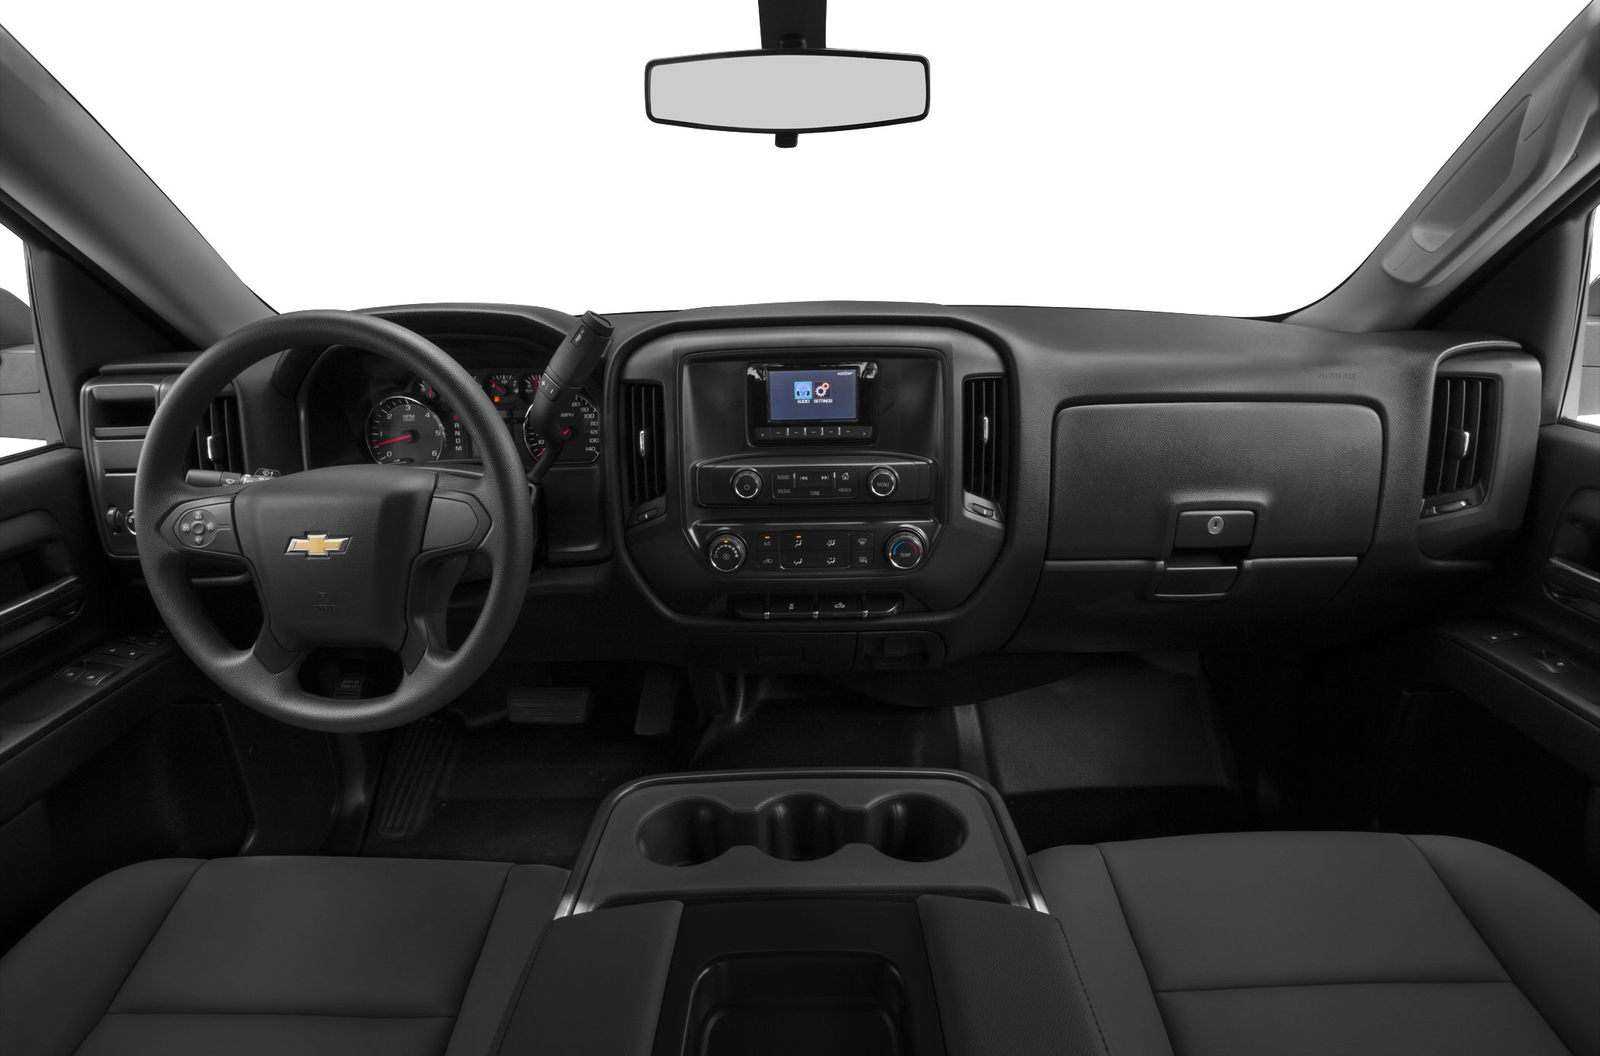 2018 Chevrolet Silverado 2500hd Deals Prices Incentives Leases Overview Carsdirect